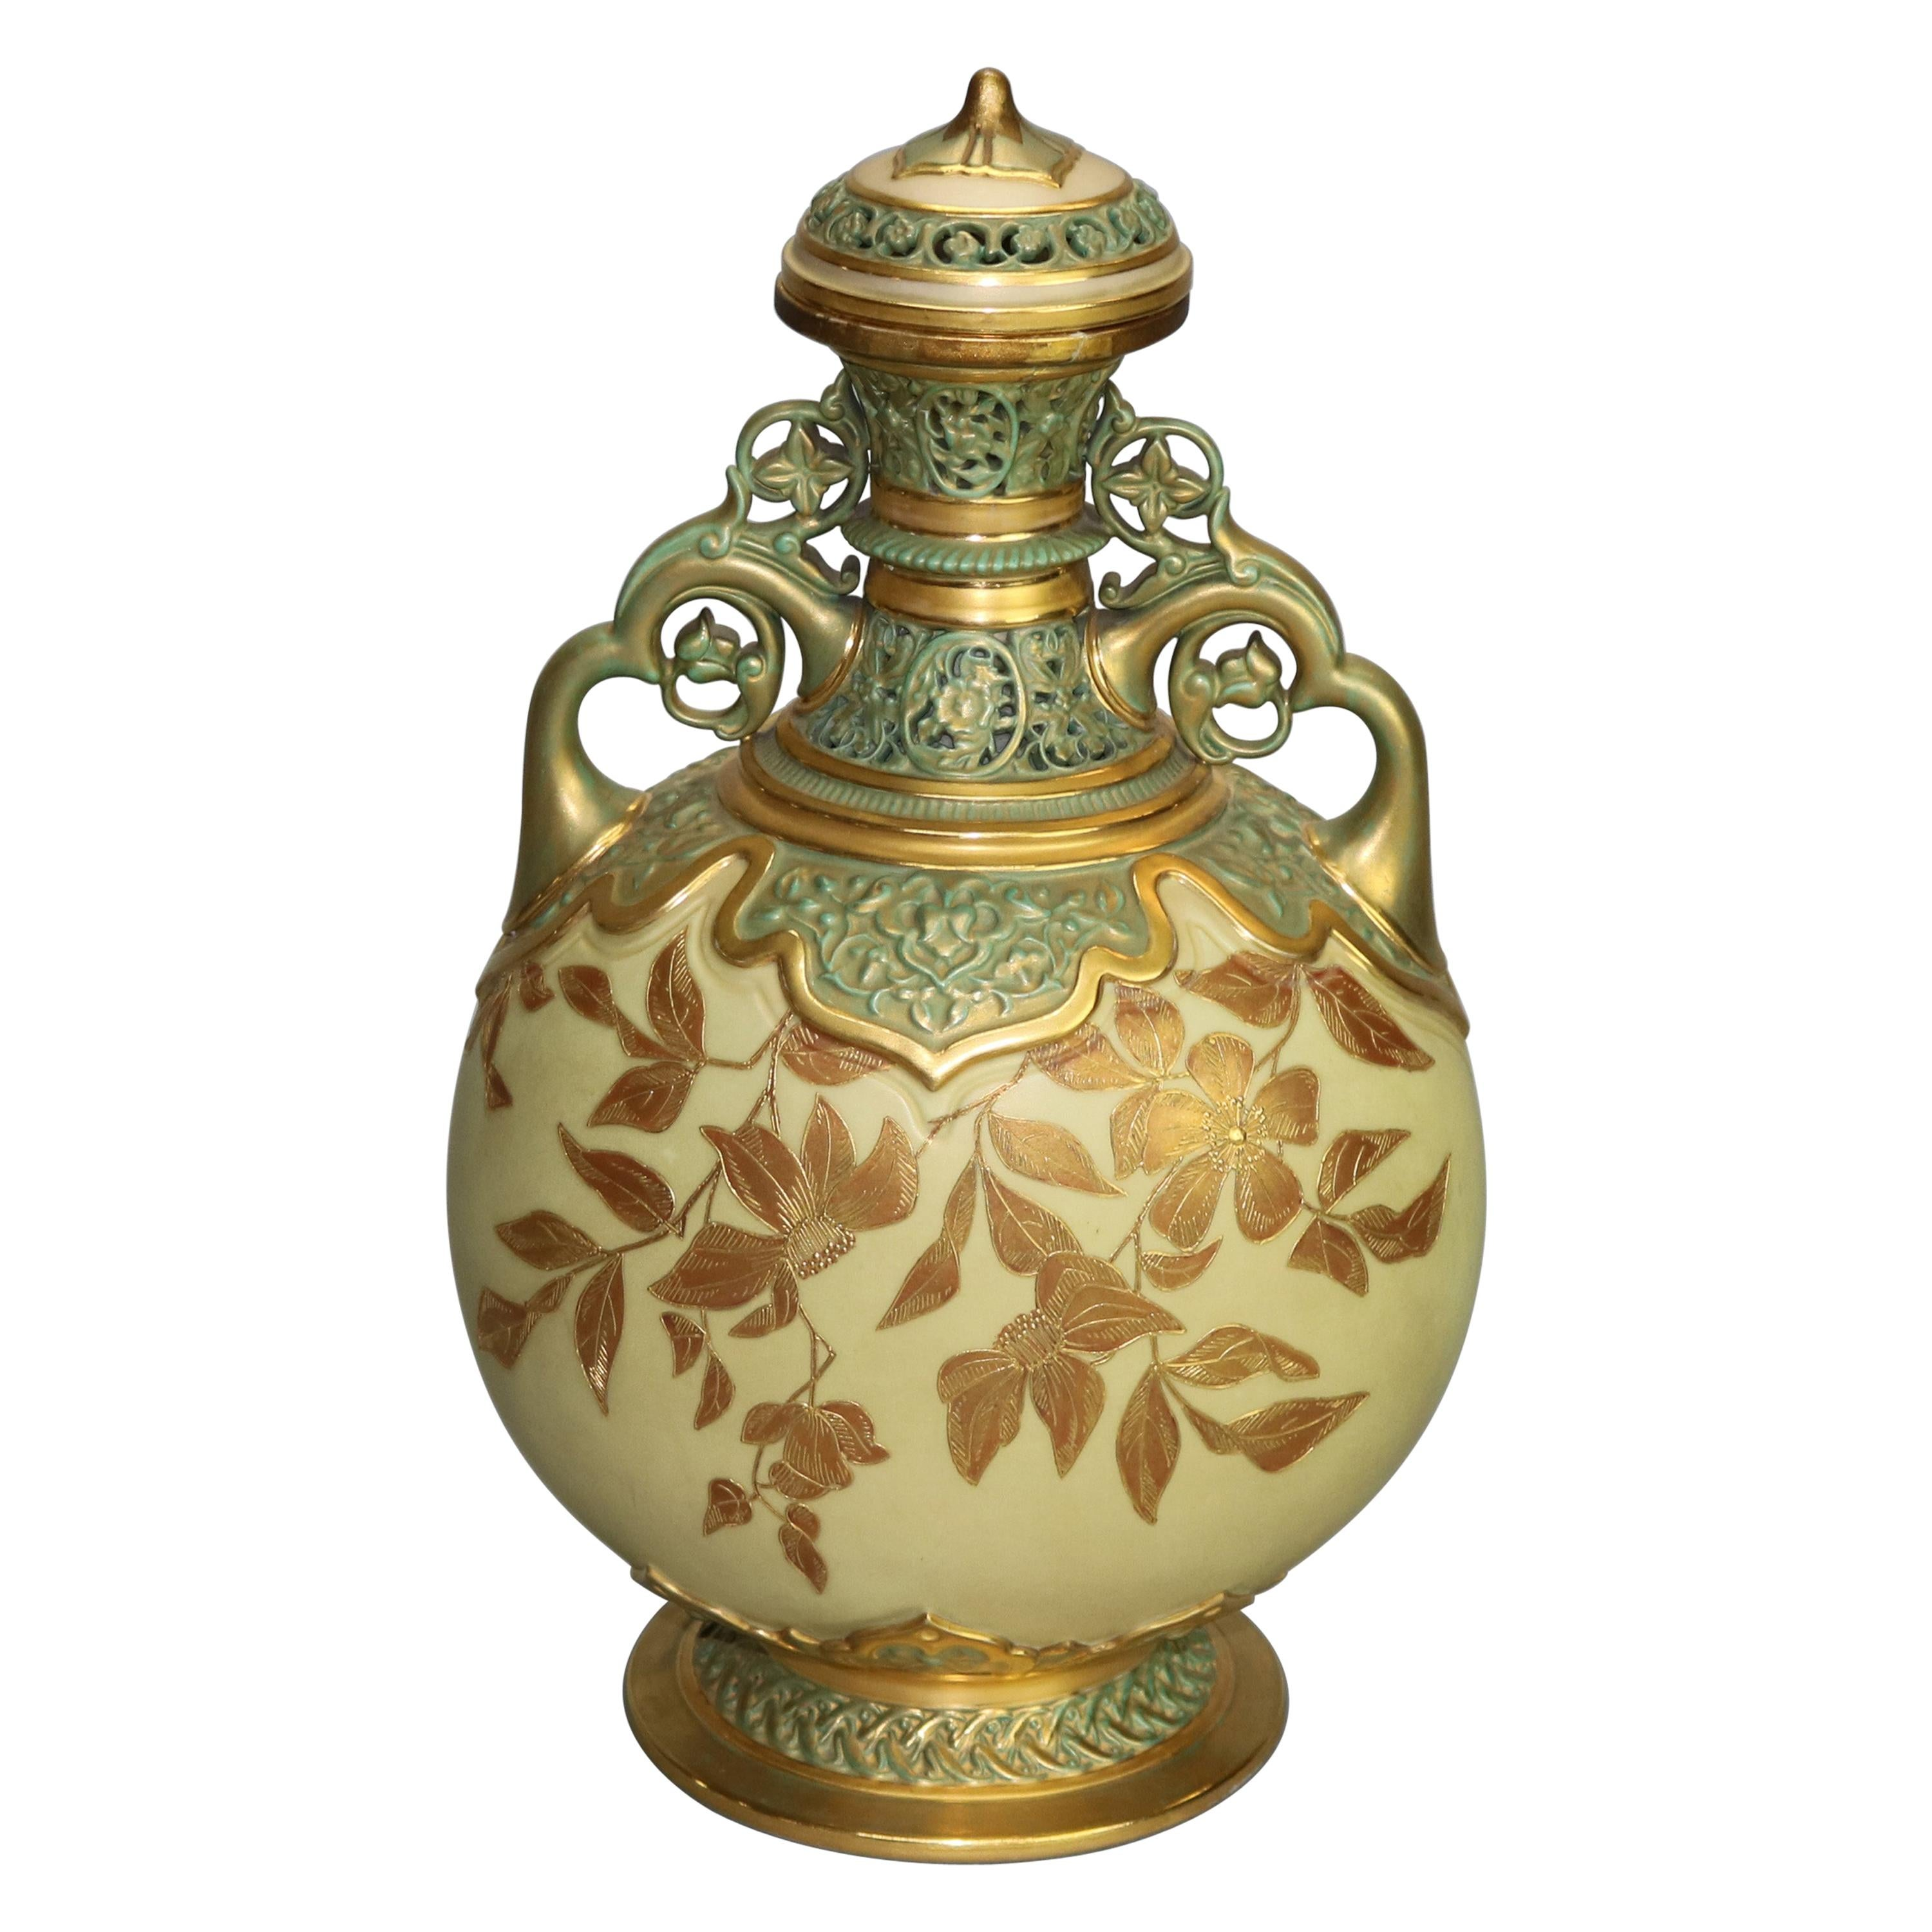 Antique Aesthetic Royal Worcester Reticulated Porcelain Urn 'as found', c1890